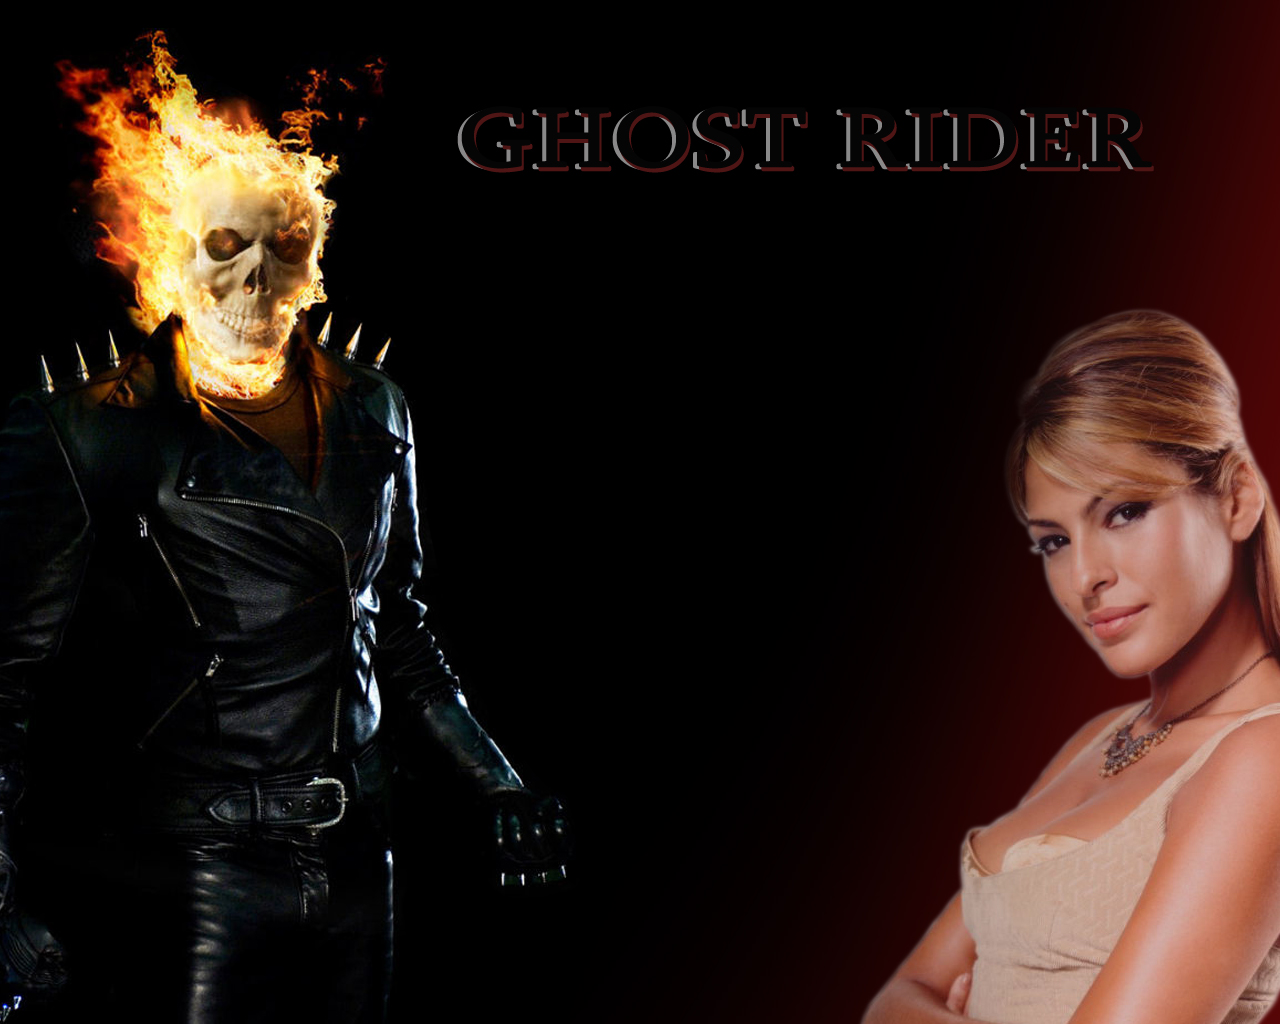 Ghost rider 2 wallpaper 1280x1024